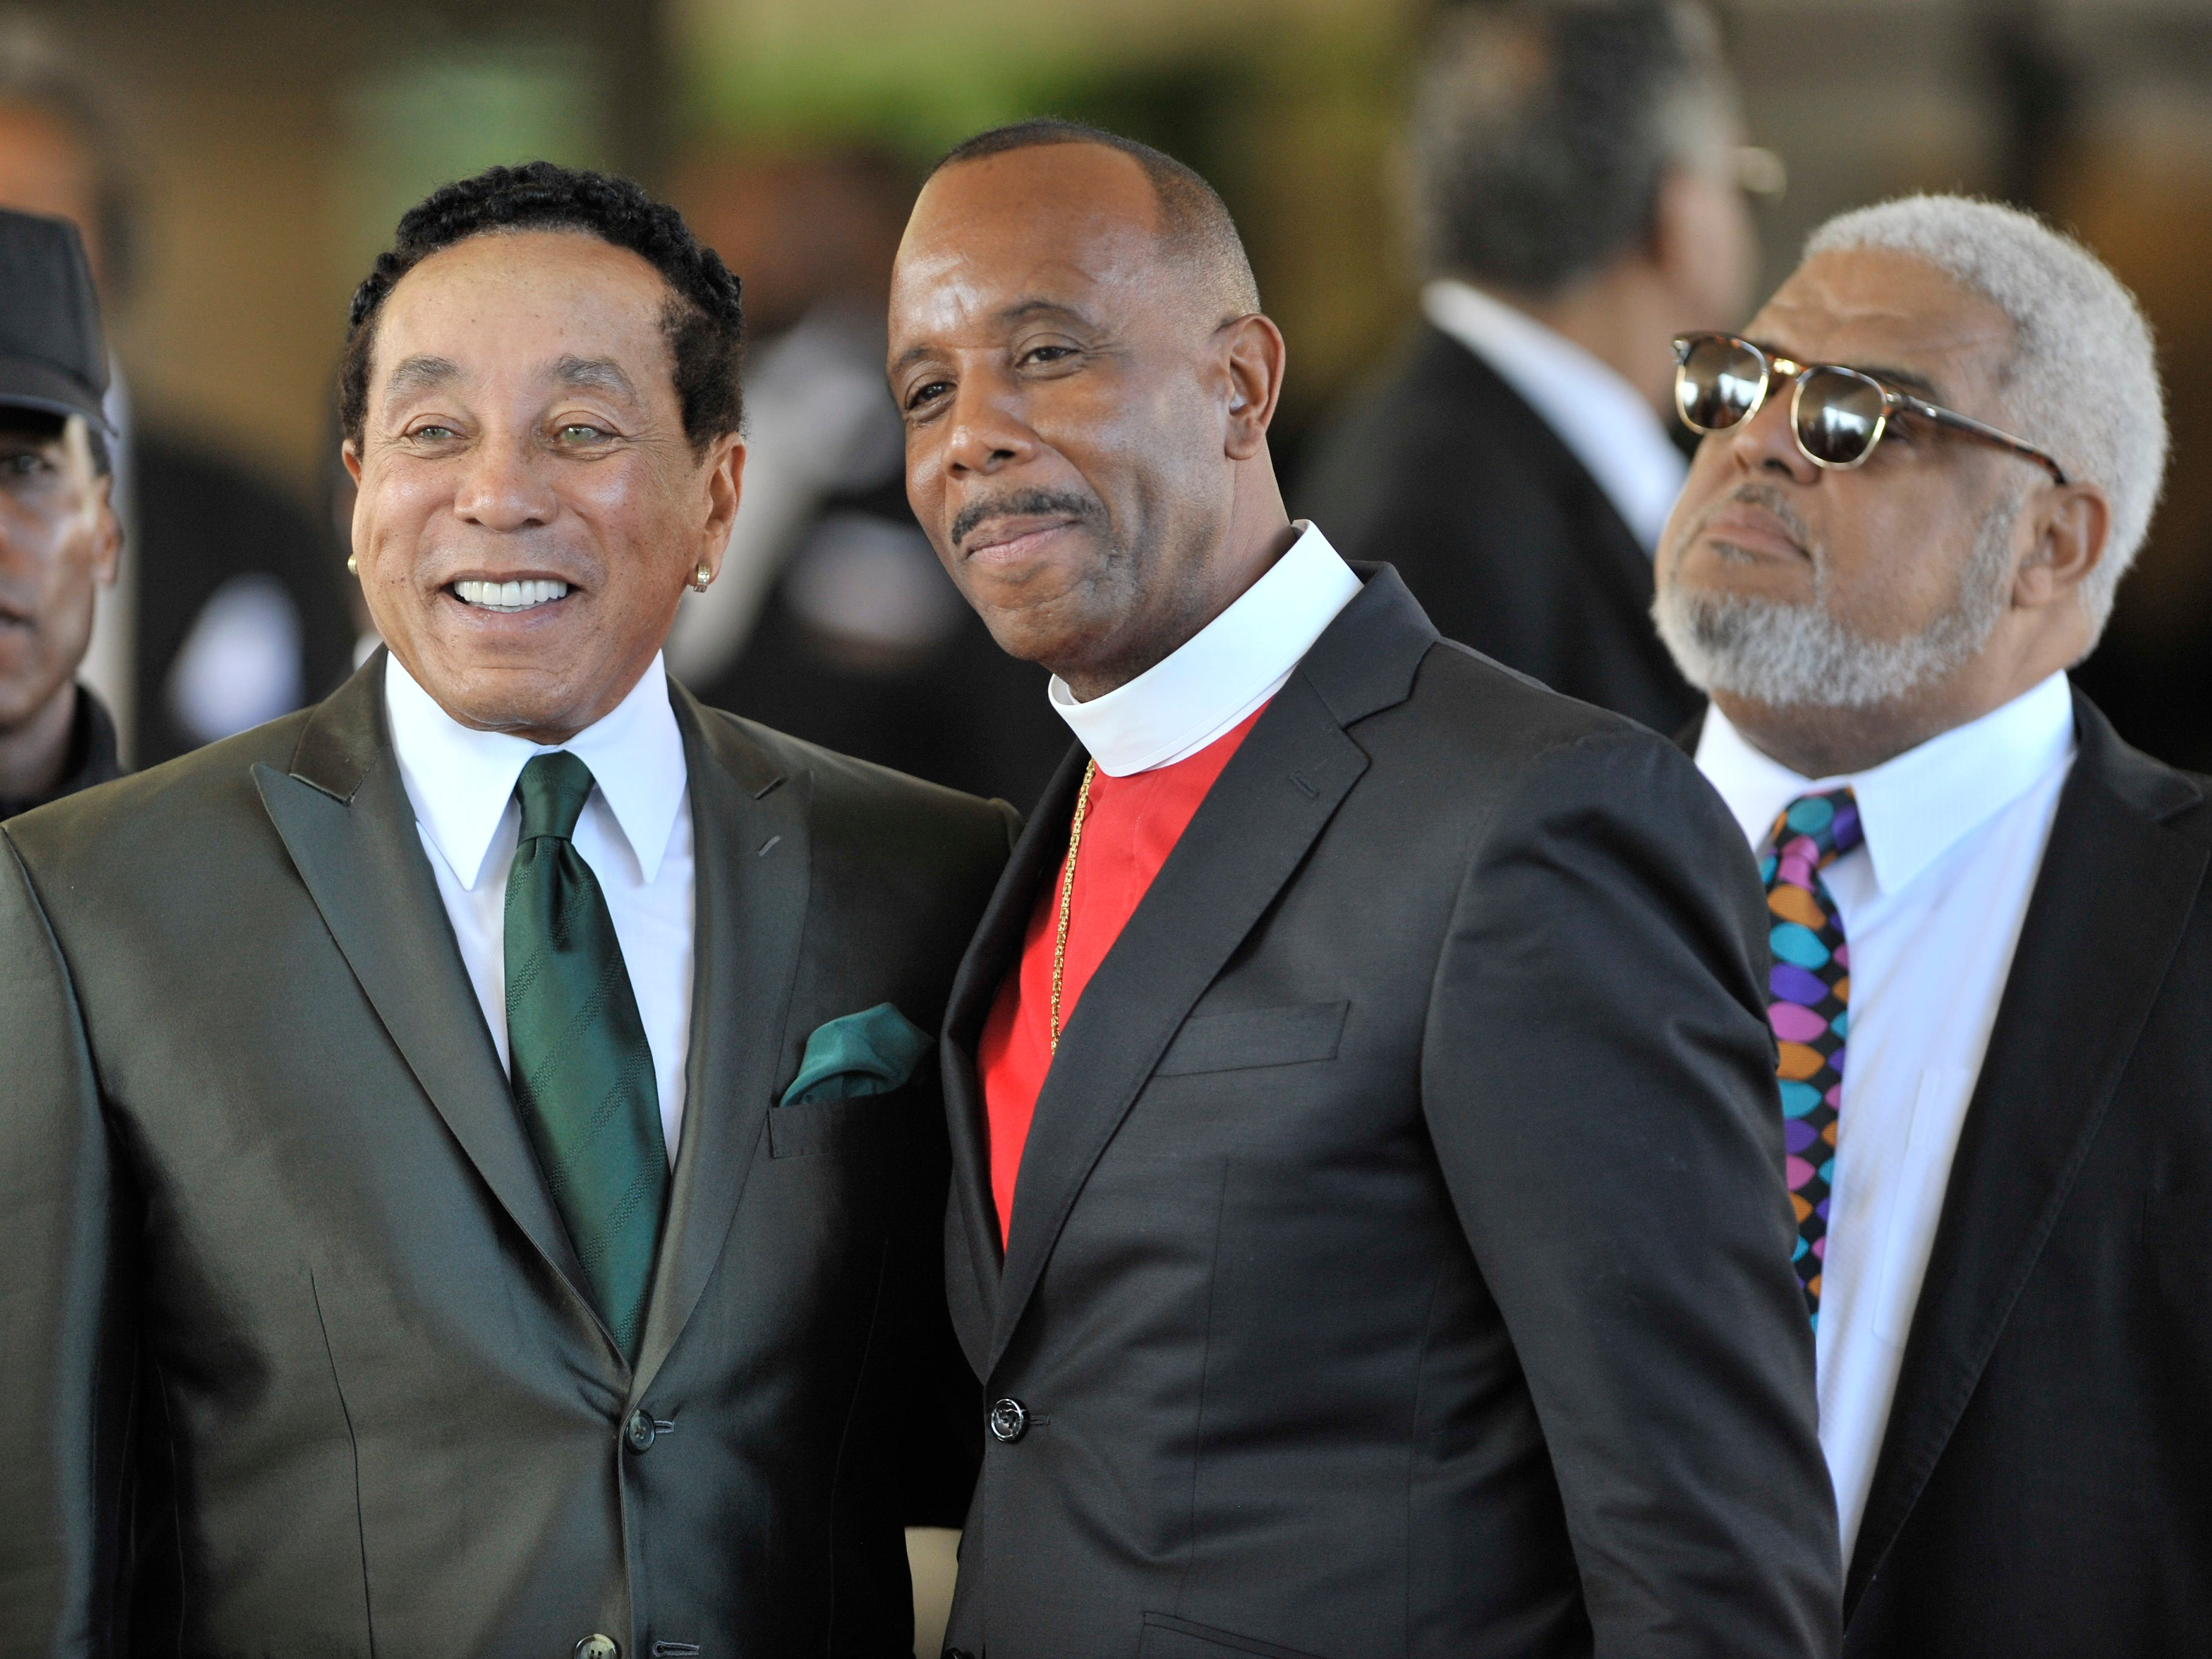 Smokey Robinson, left, and Bishop Charles Ellis III pose for the media.